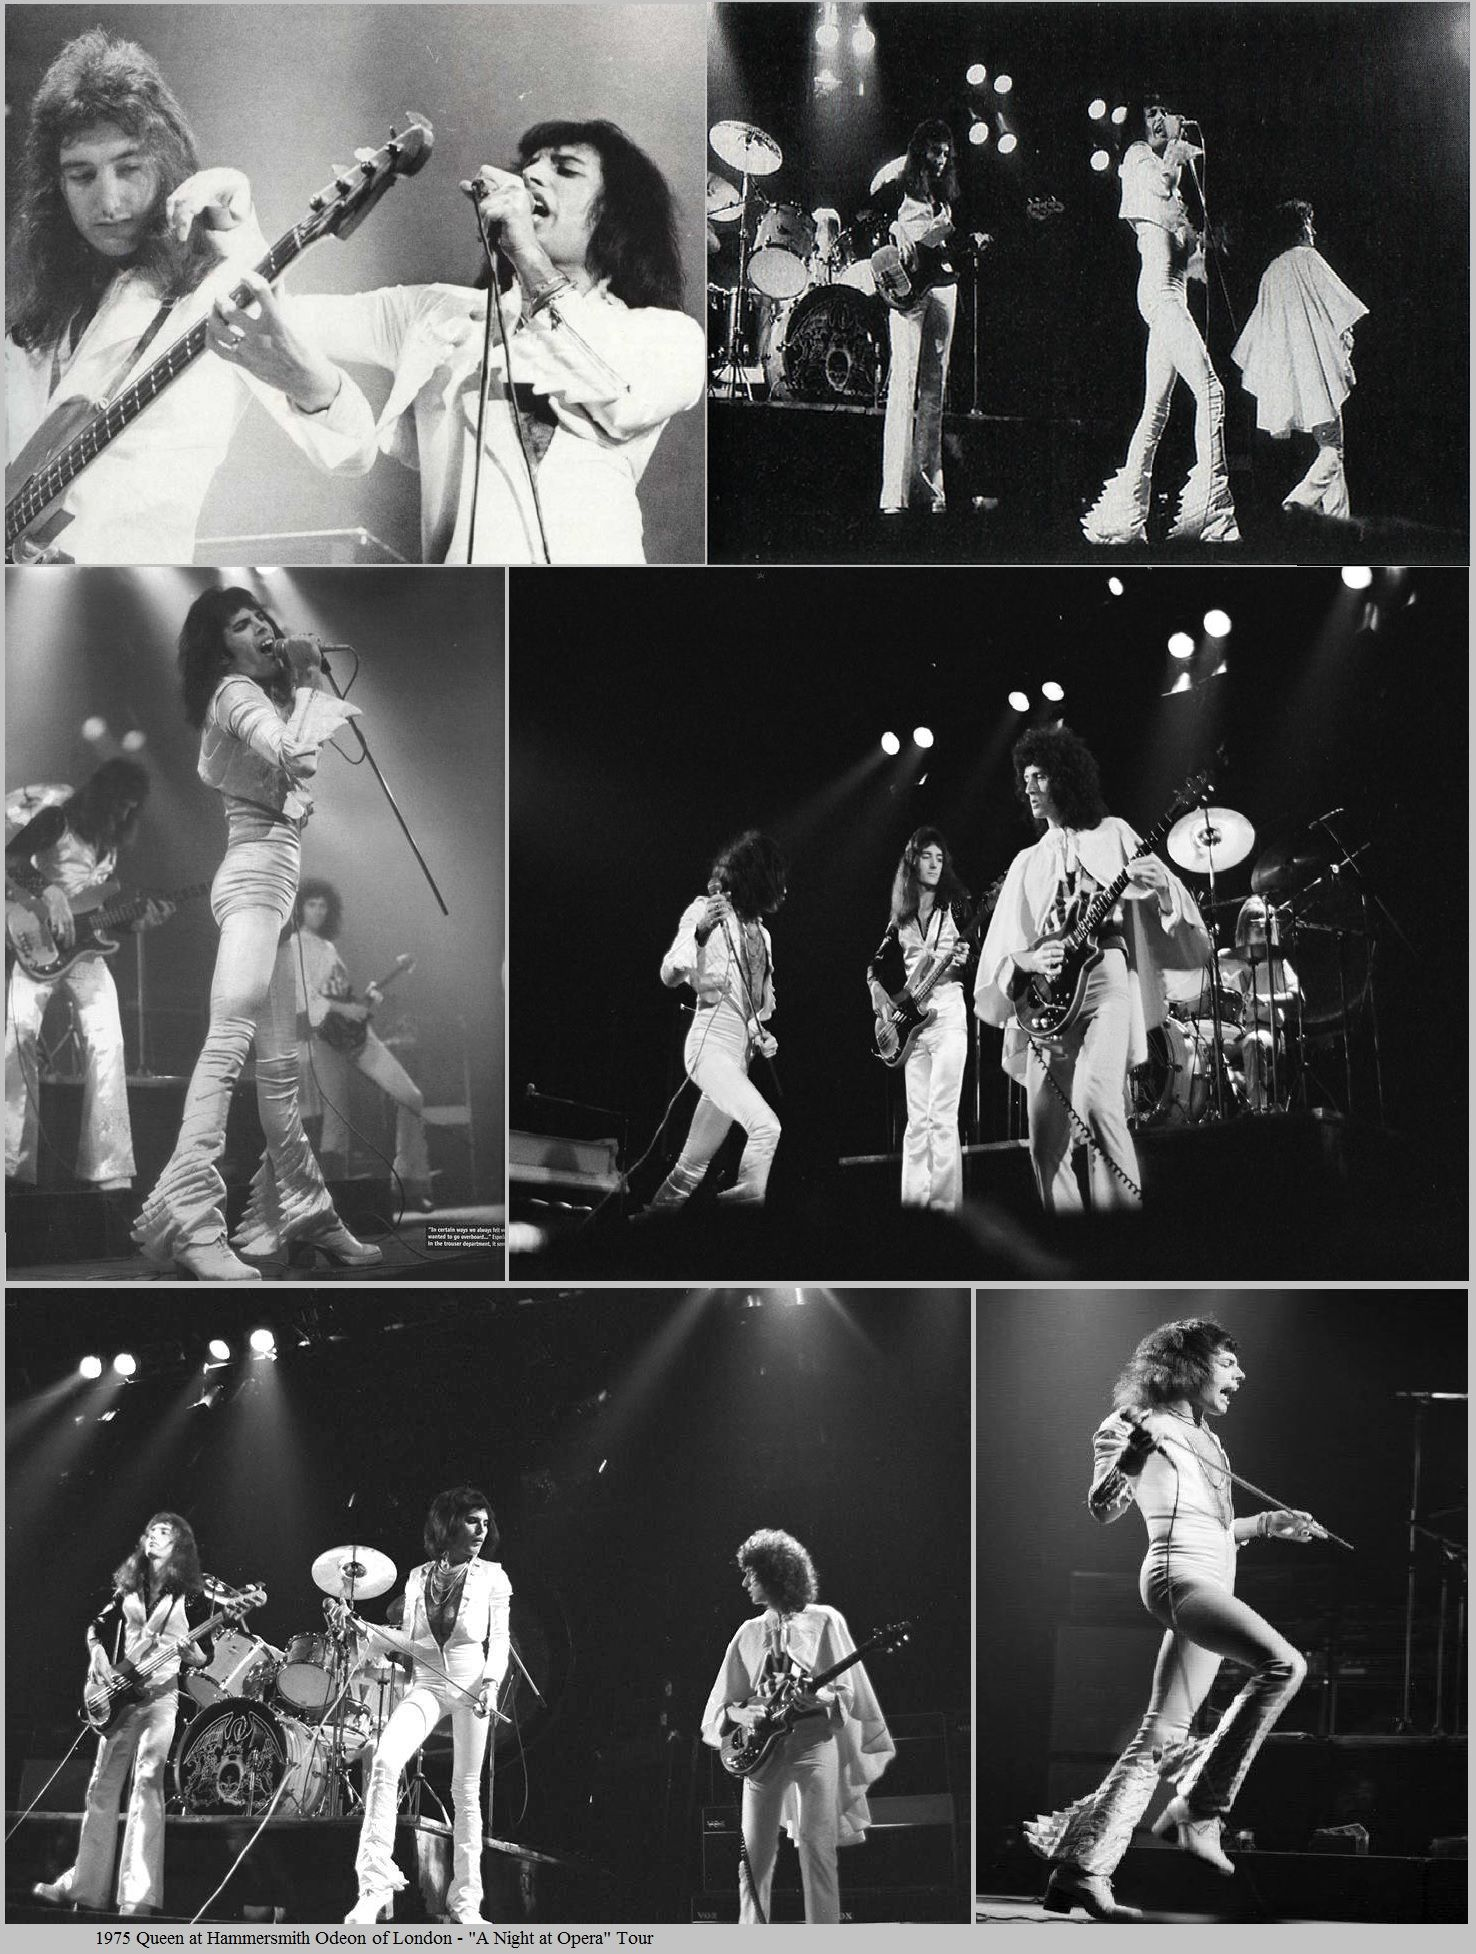 1975 Hammersmith Odeon di Londra, live tour A Night At The Opera.